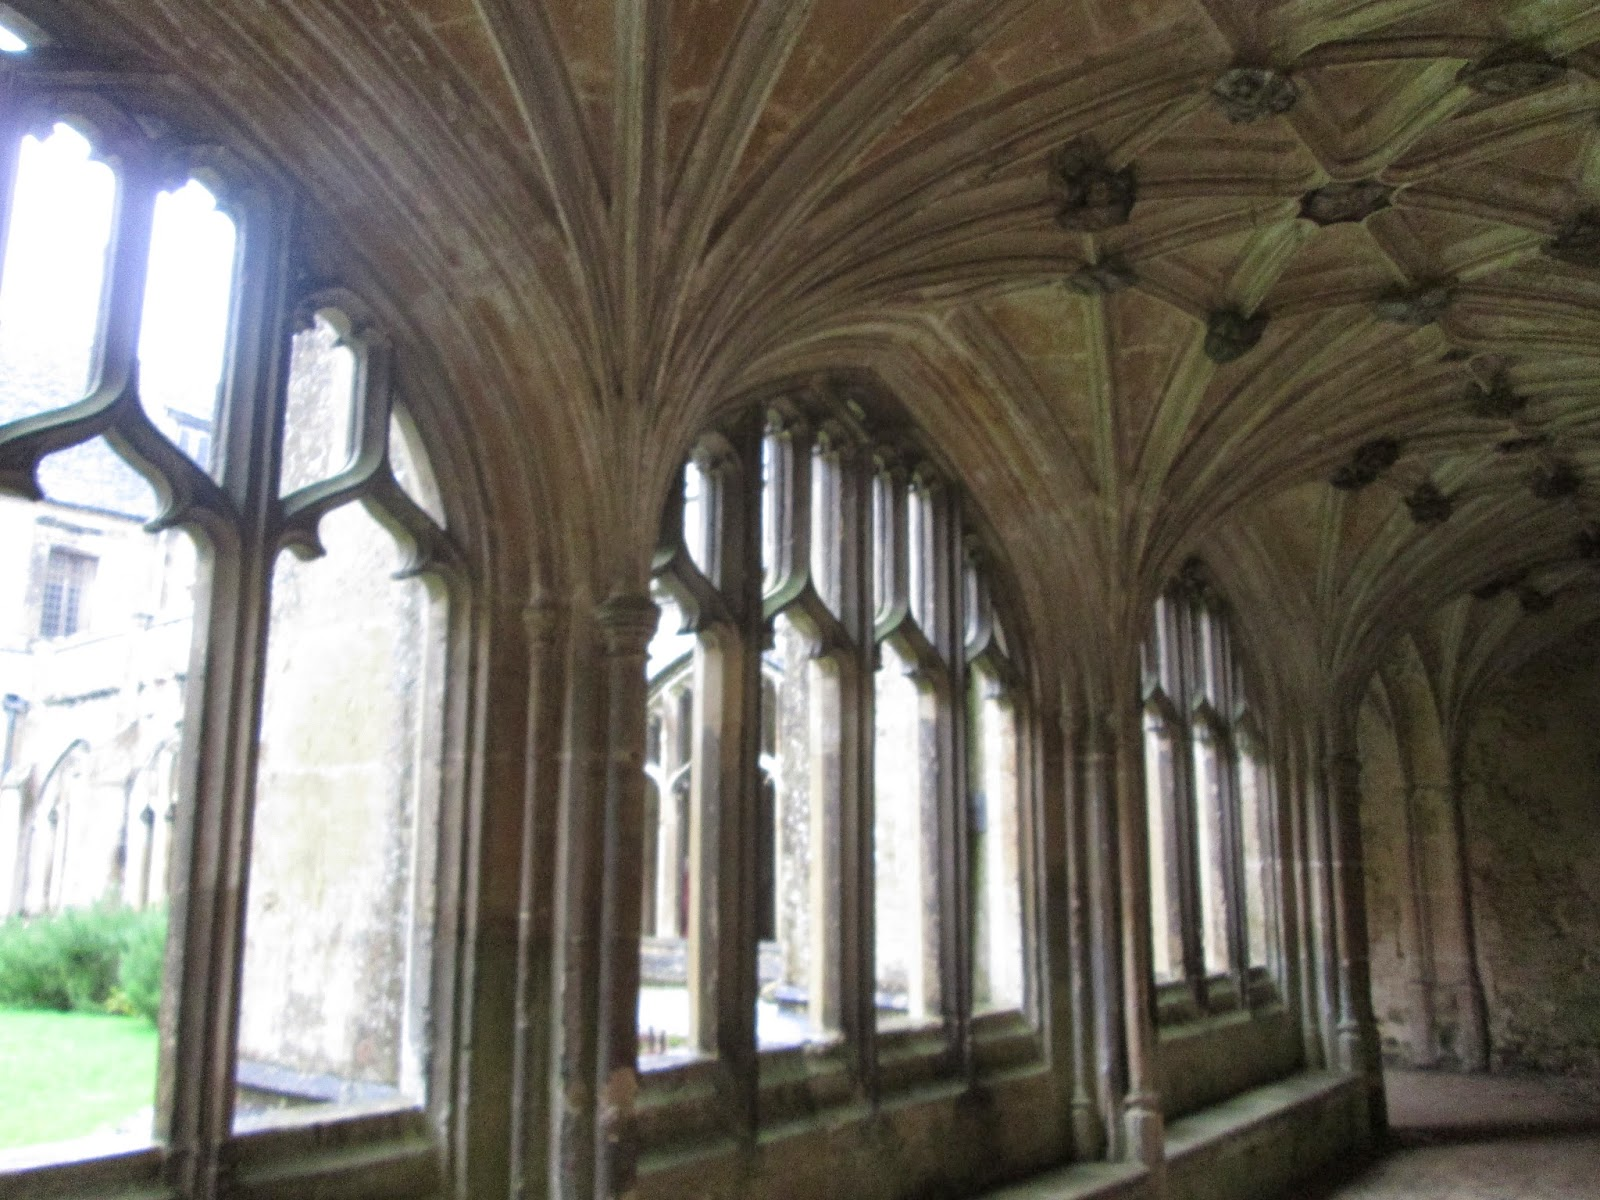 Most Inspiring Wallpaper Harry Potter Dining Hall - IMG_7395  Best Photo Reference_19249.JPG